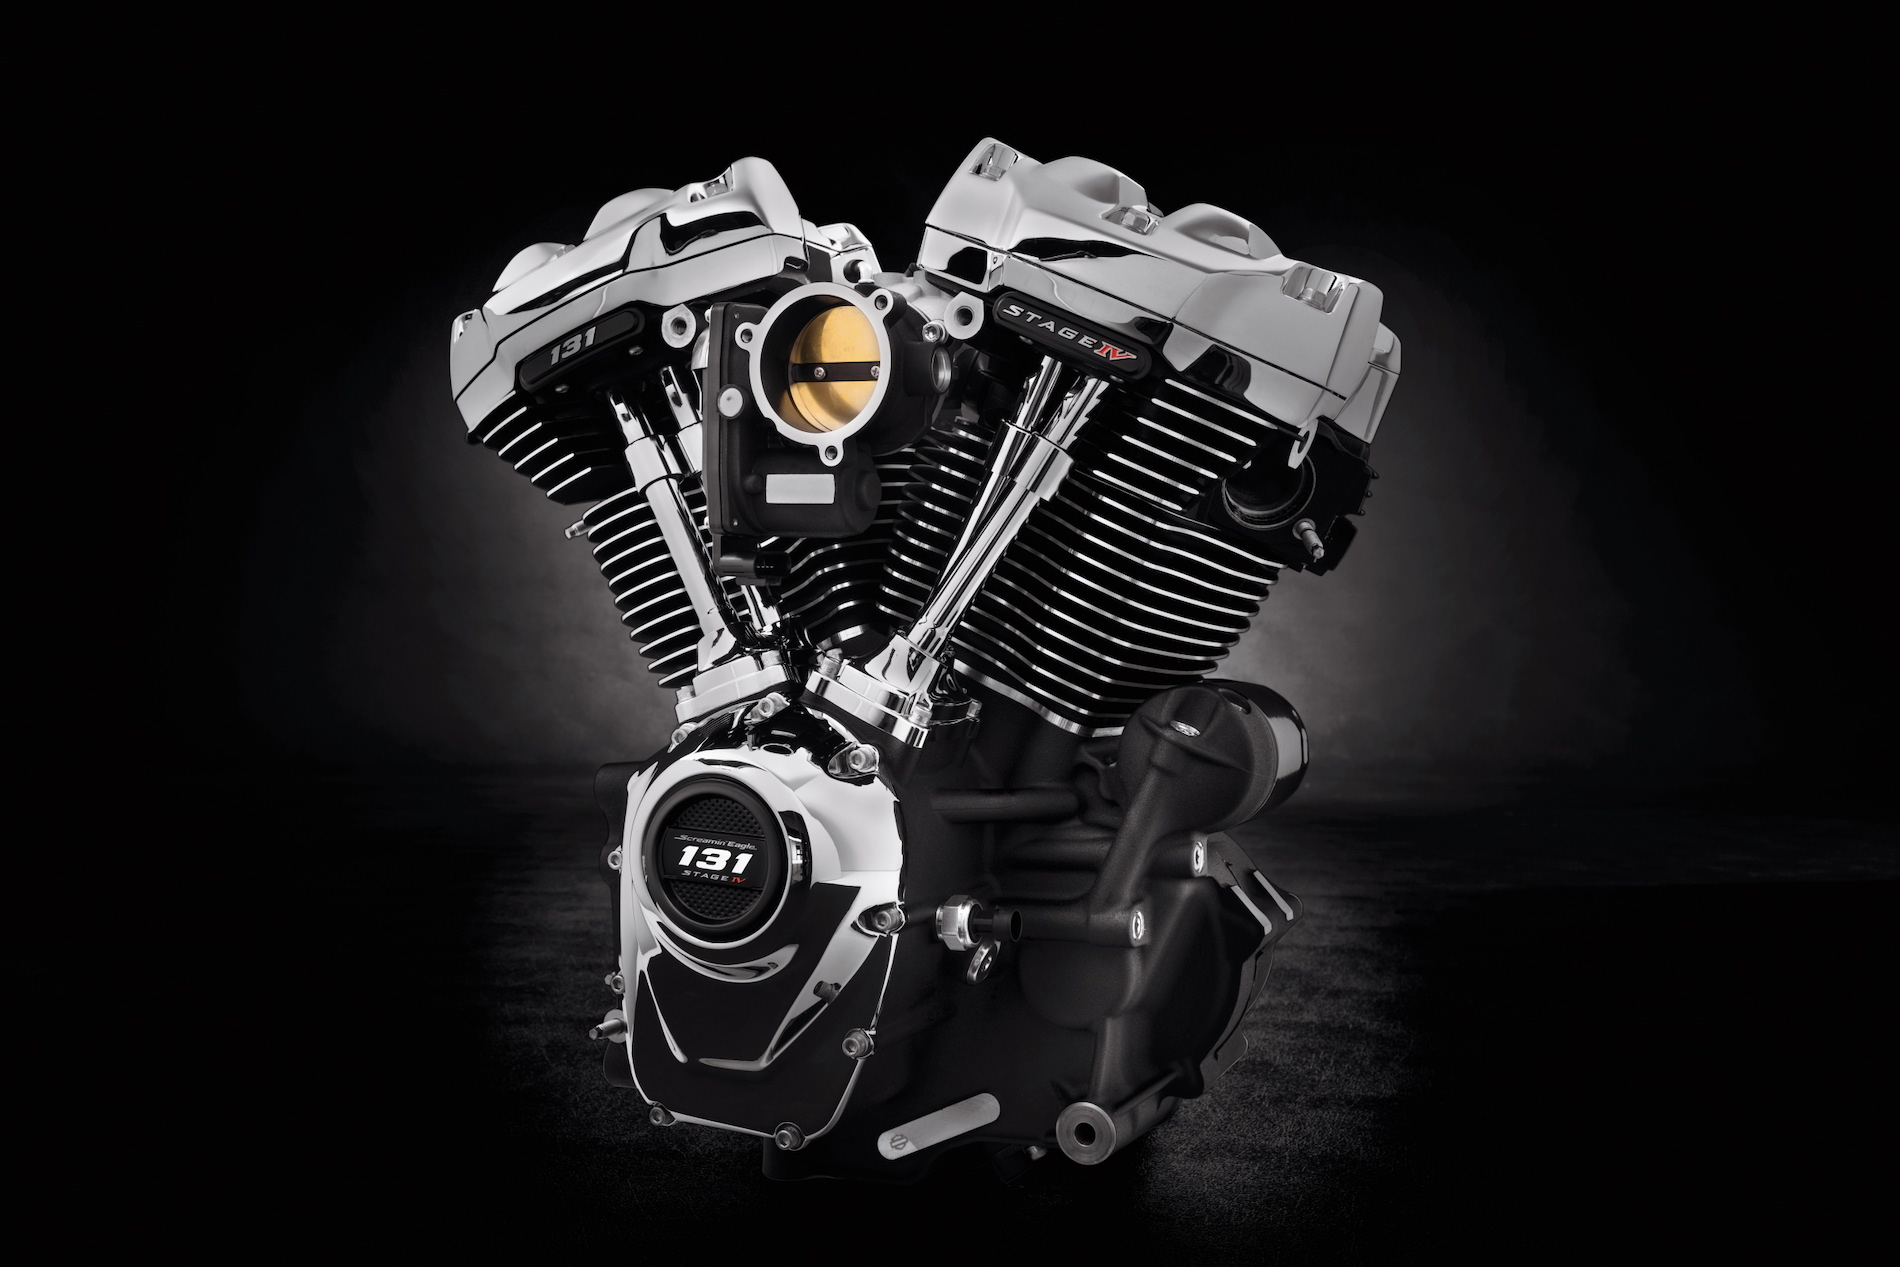 Harley-Davidson Screamin' Eagle 131 engine